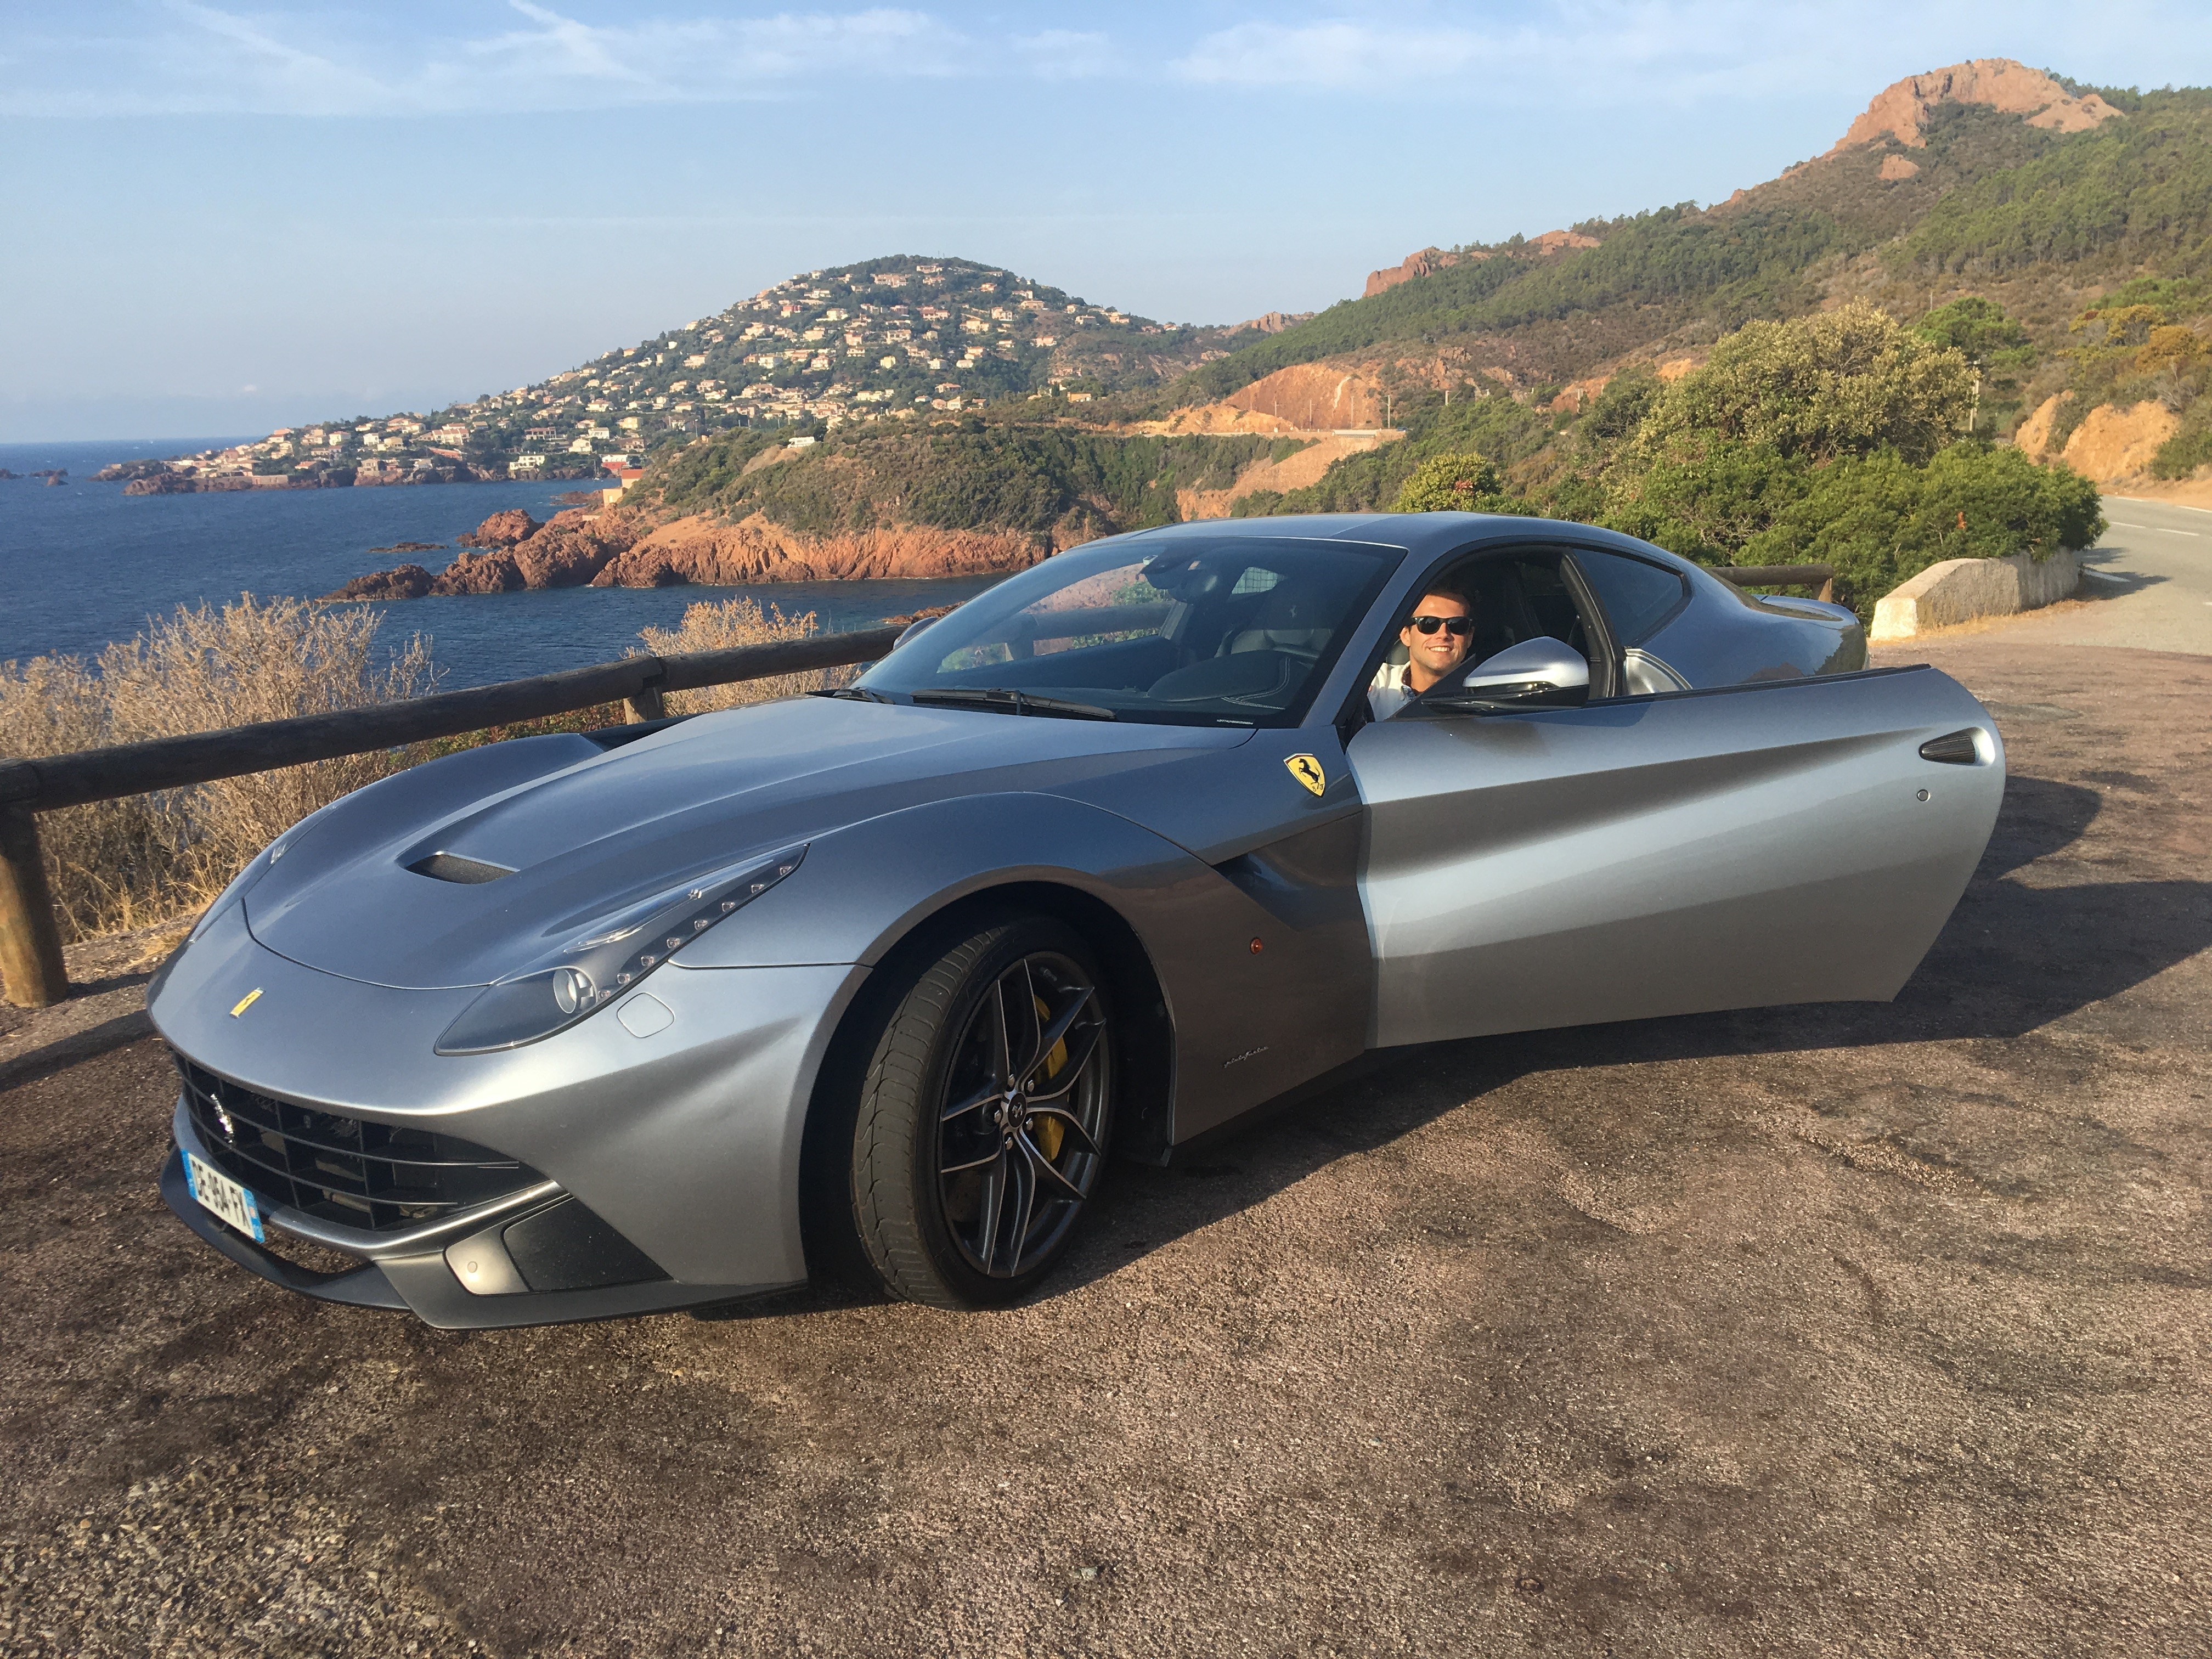 Hire a Ferrari F12 french Riviera car4rent